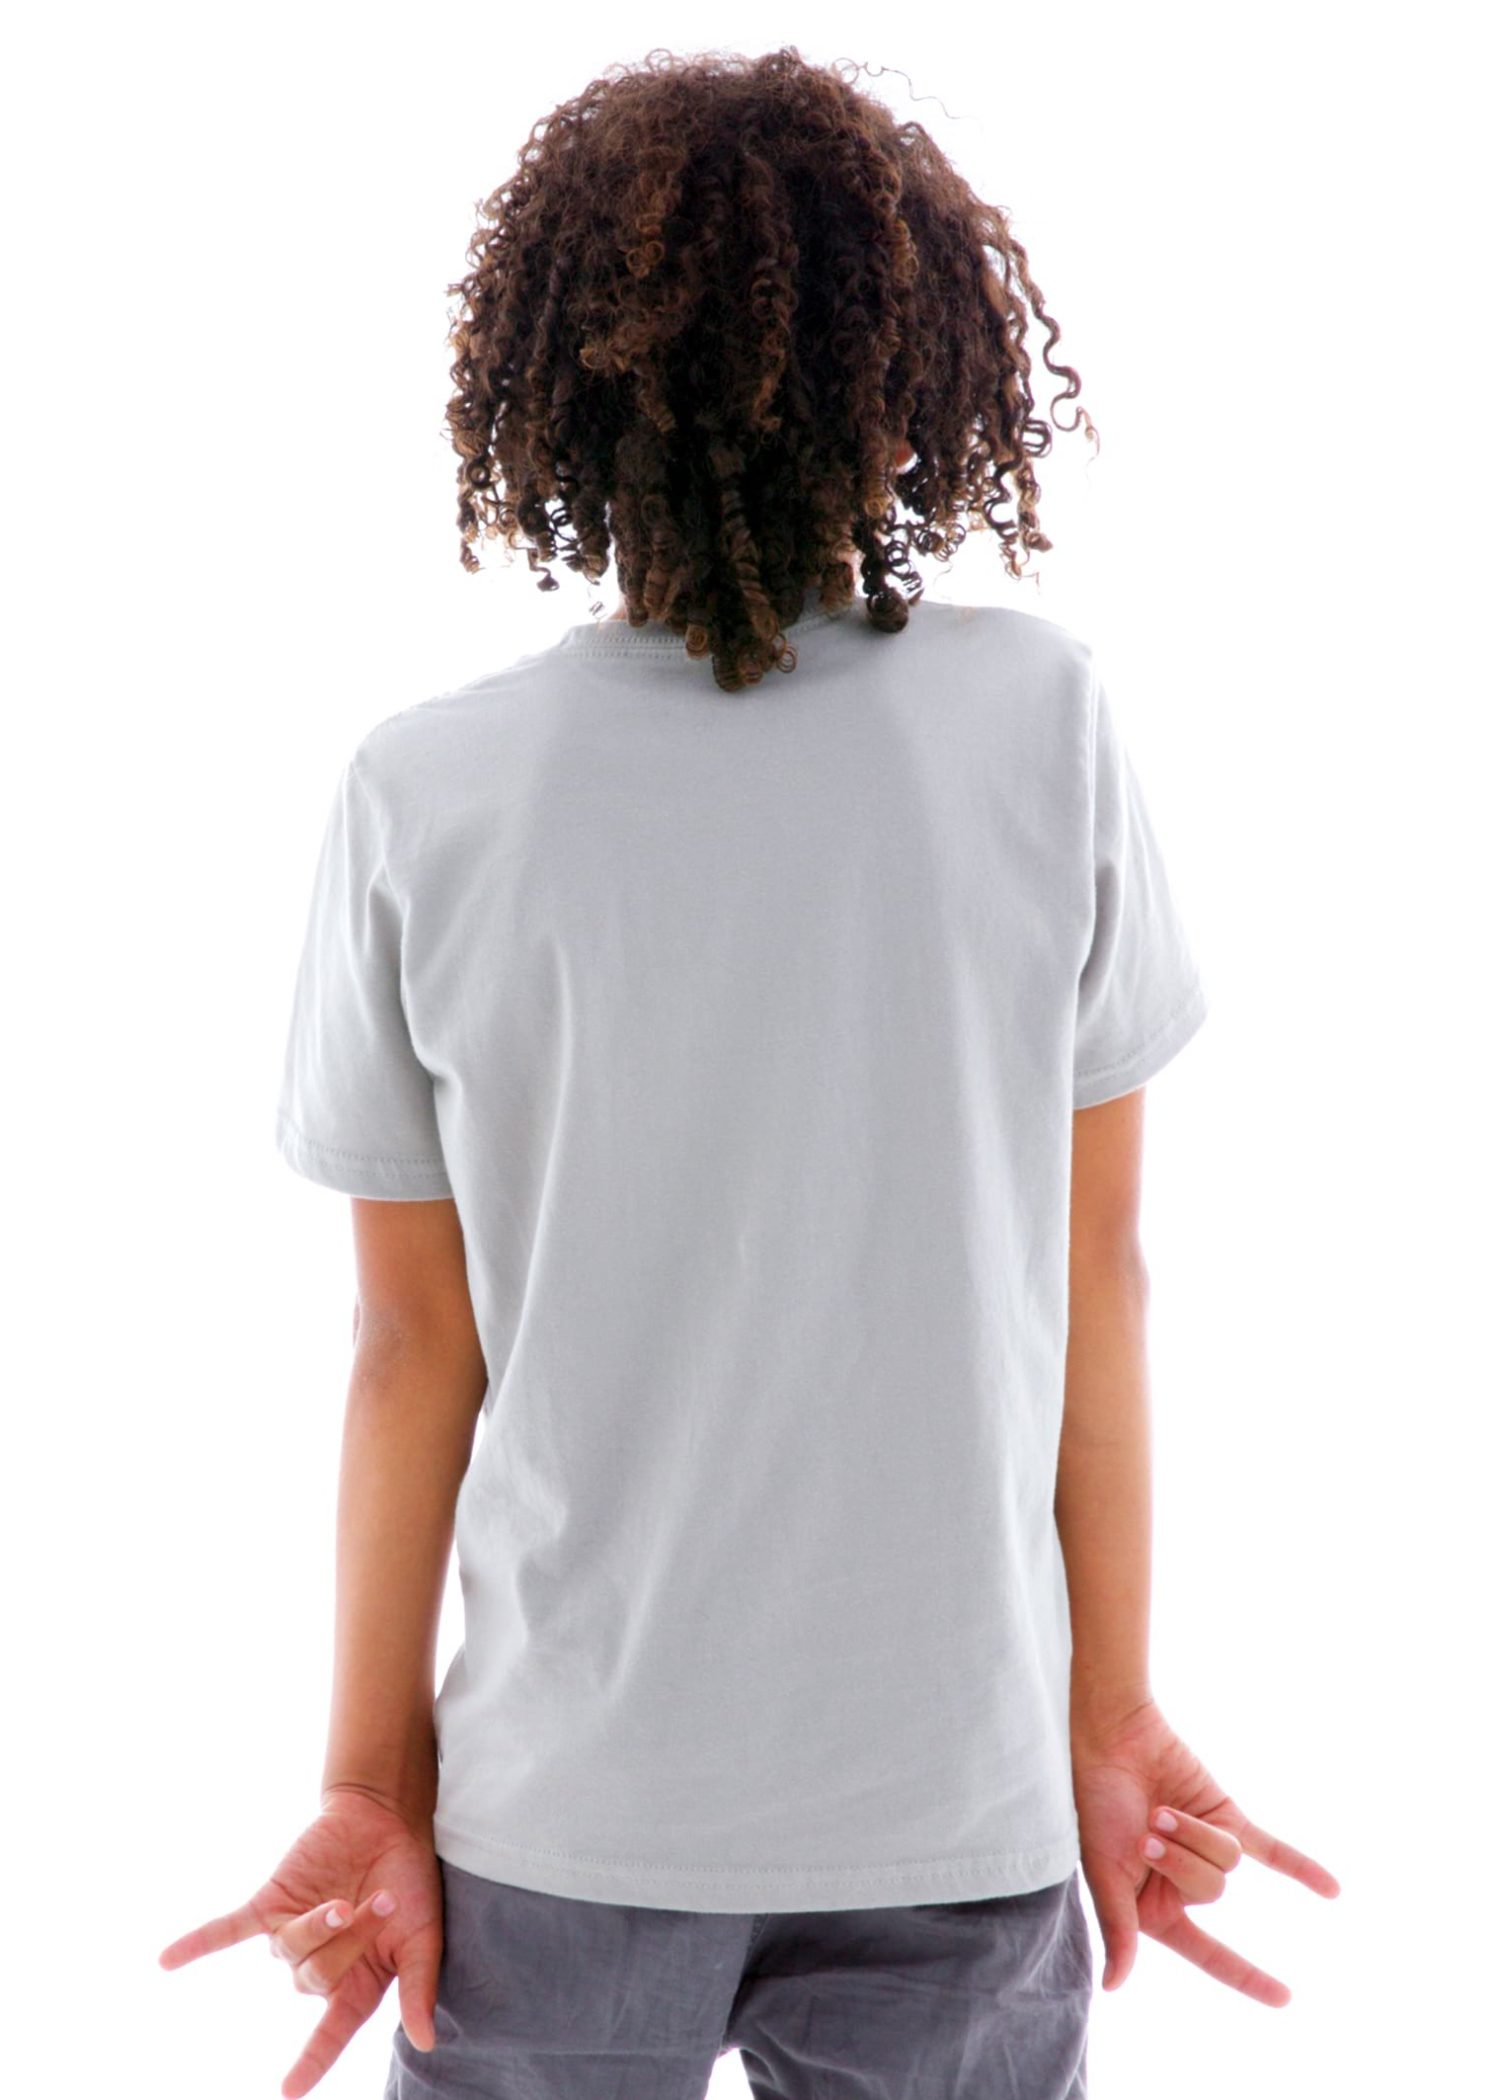 Kid's Short Sleeve Crew T-Shirt